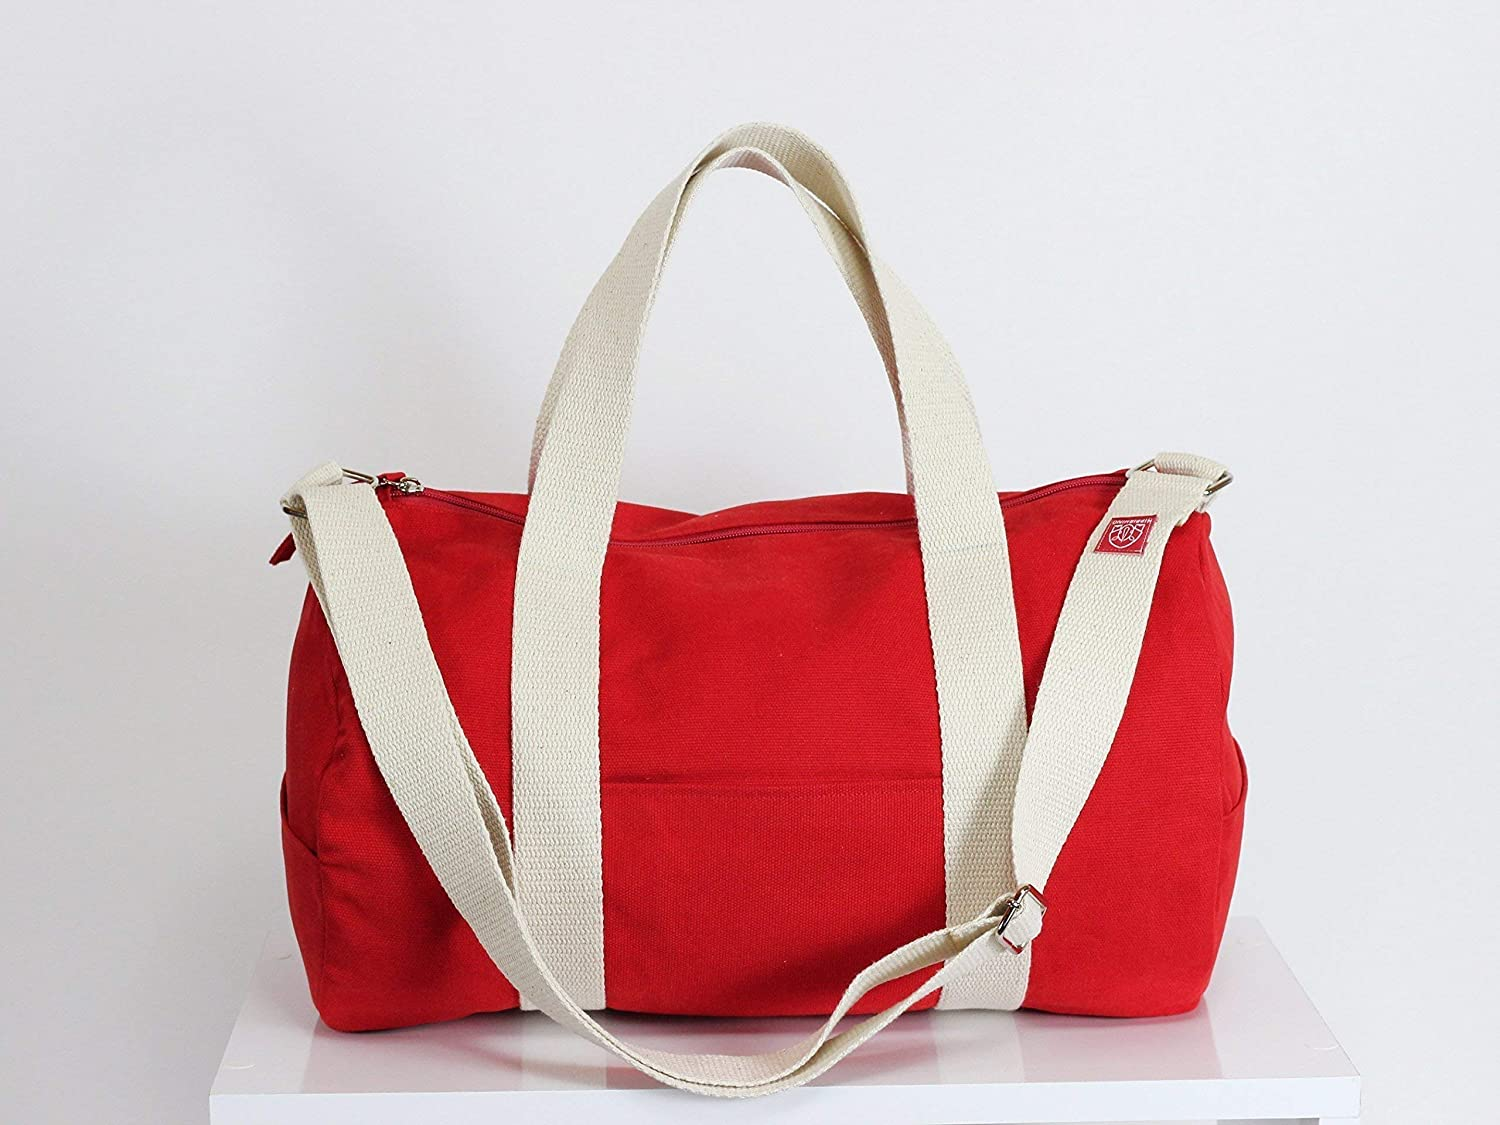 Red Outlet ☆ Free Shipping Duffel Bag Full Lined Durable Washable and Sales for sale Adjustable Long